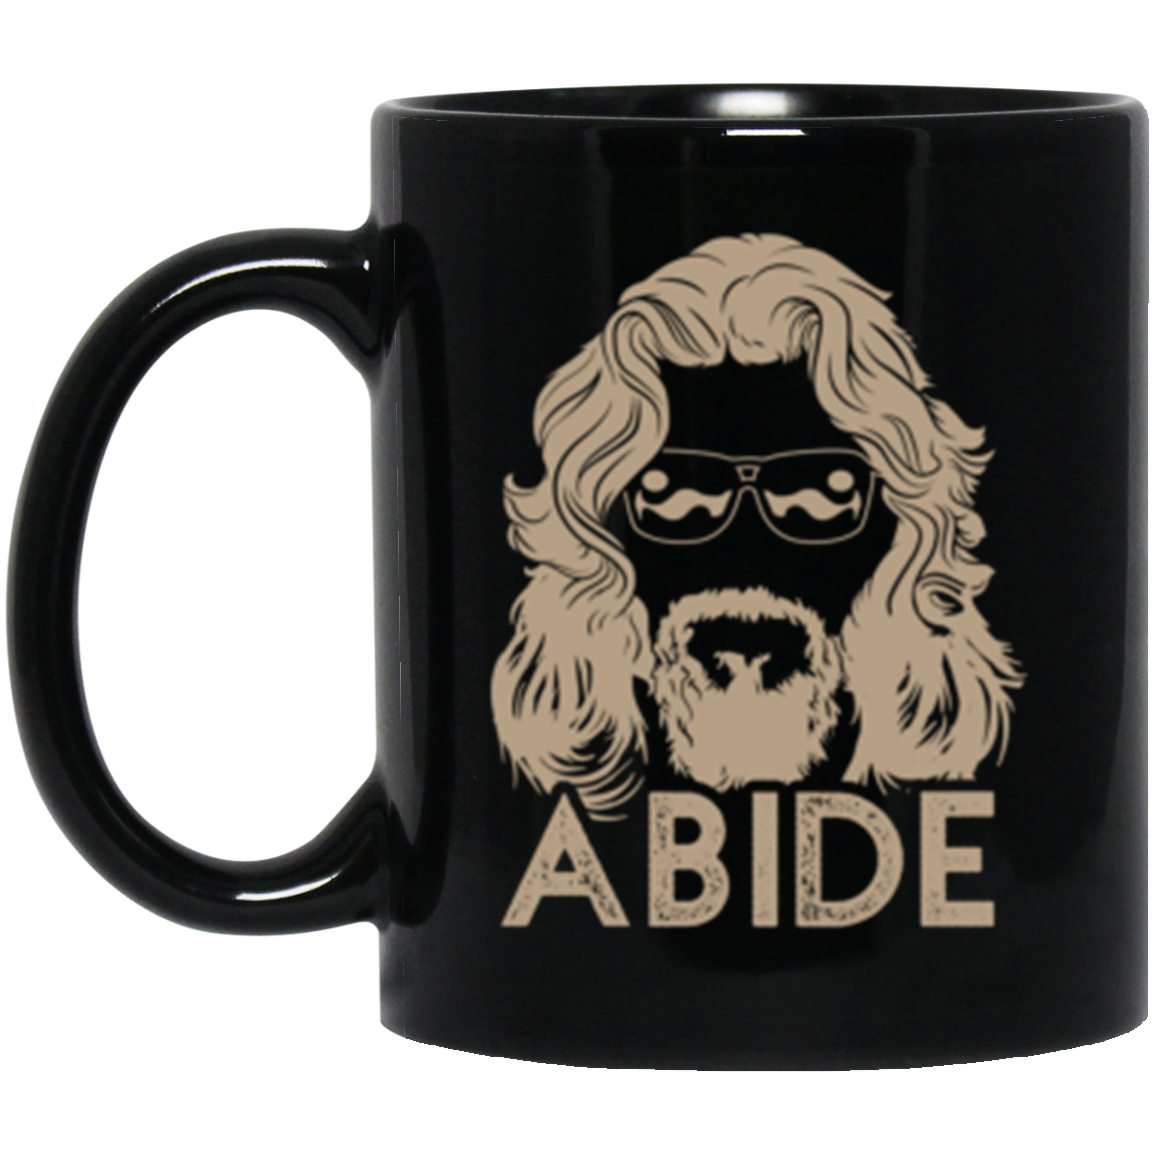 Drinkware - Abide Mug 11oz (2-sided)